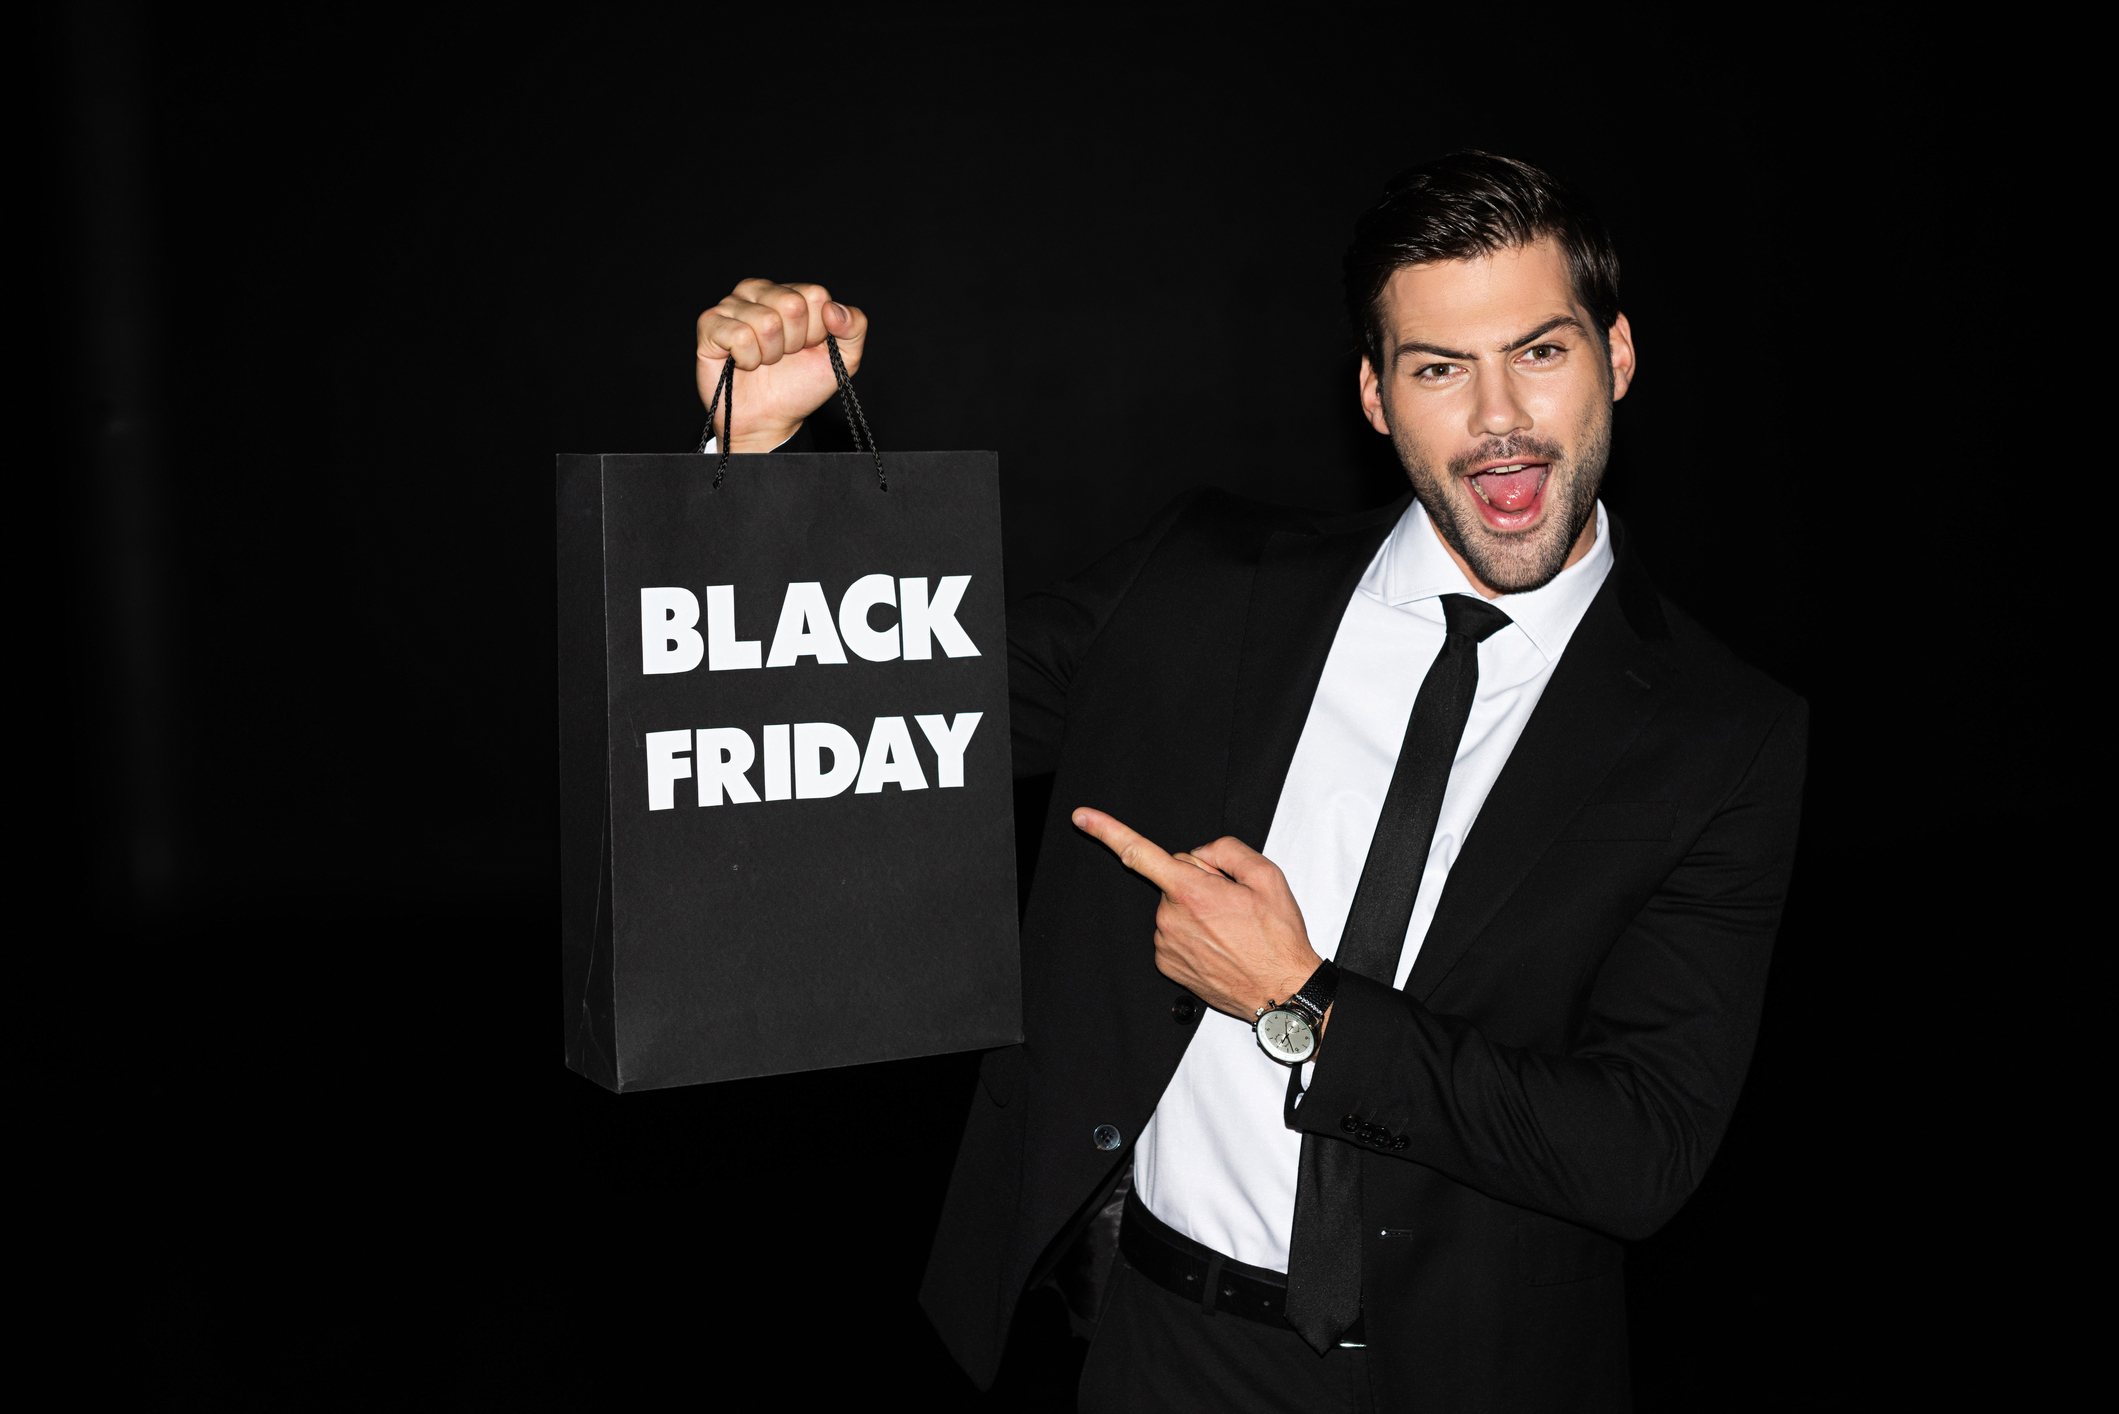 Black Friday 2019 | GettyImages